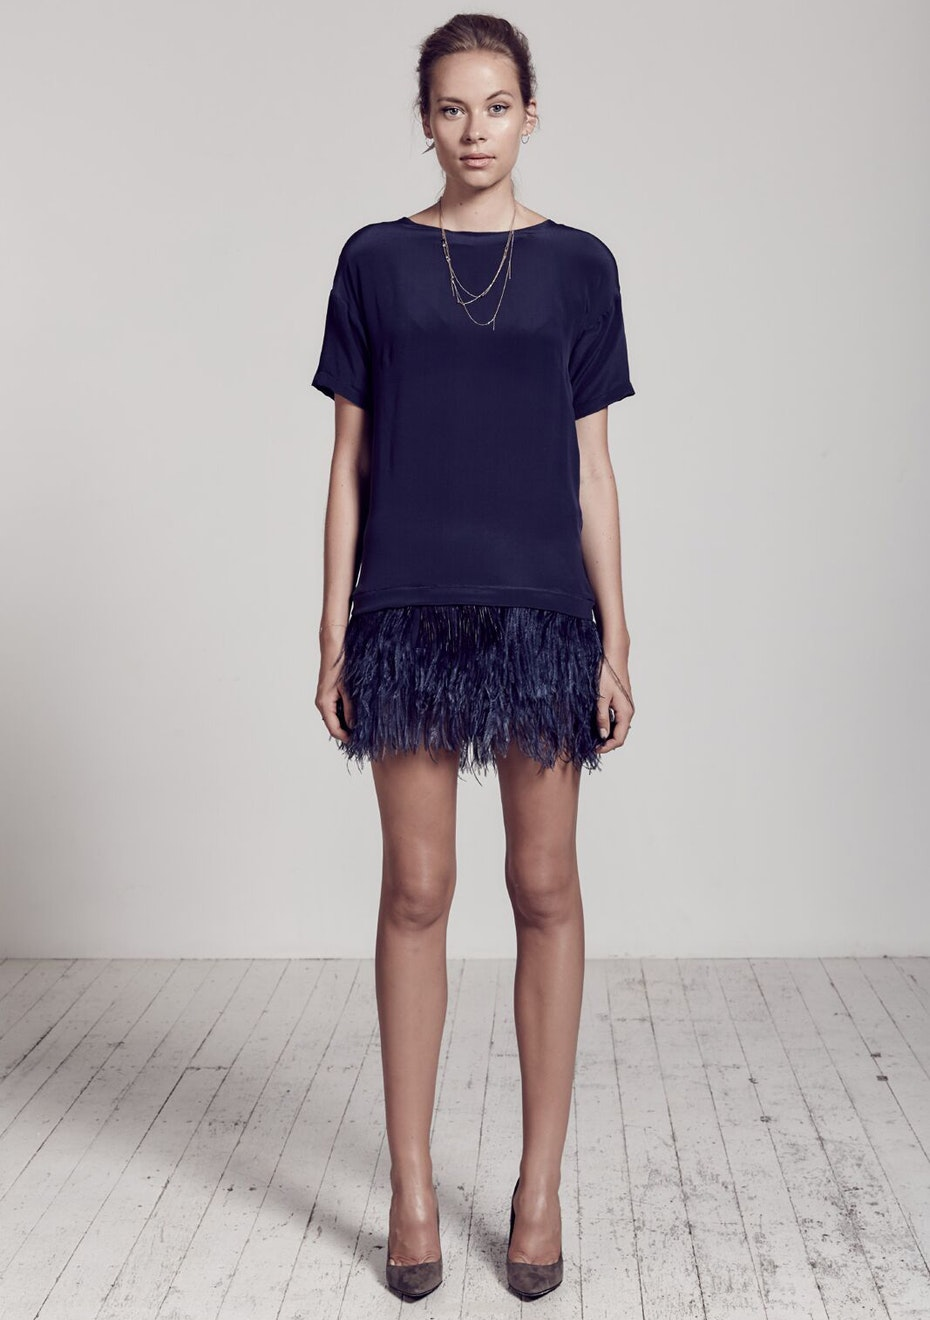 West 14th - Yve Silk Tee Dress With Ostrid Feathers - Blueberry Navy